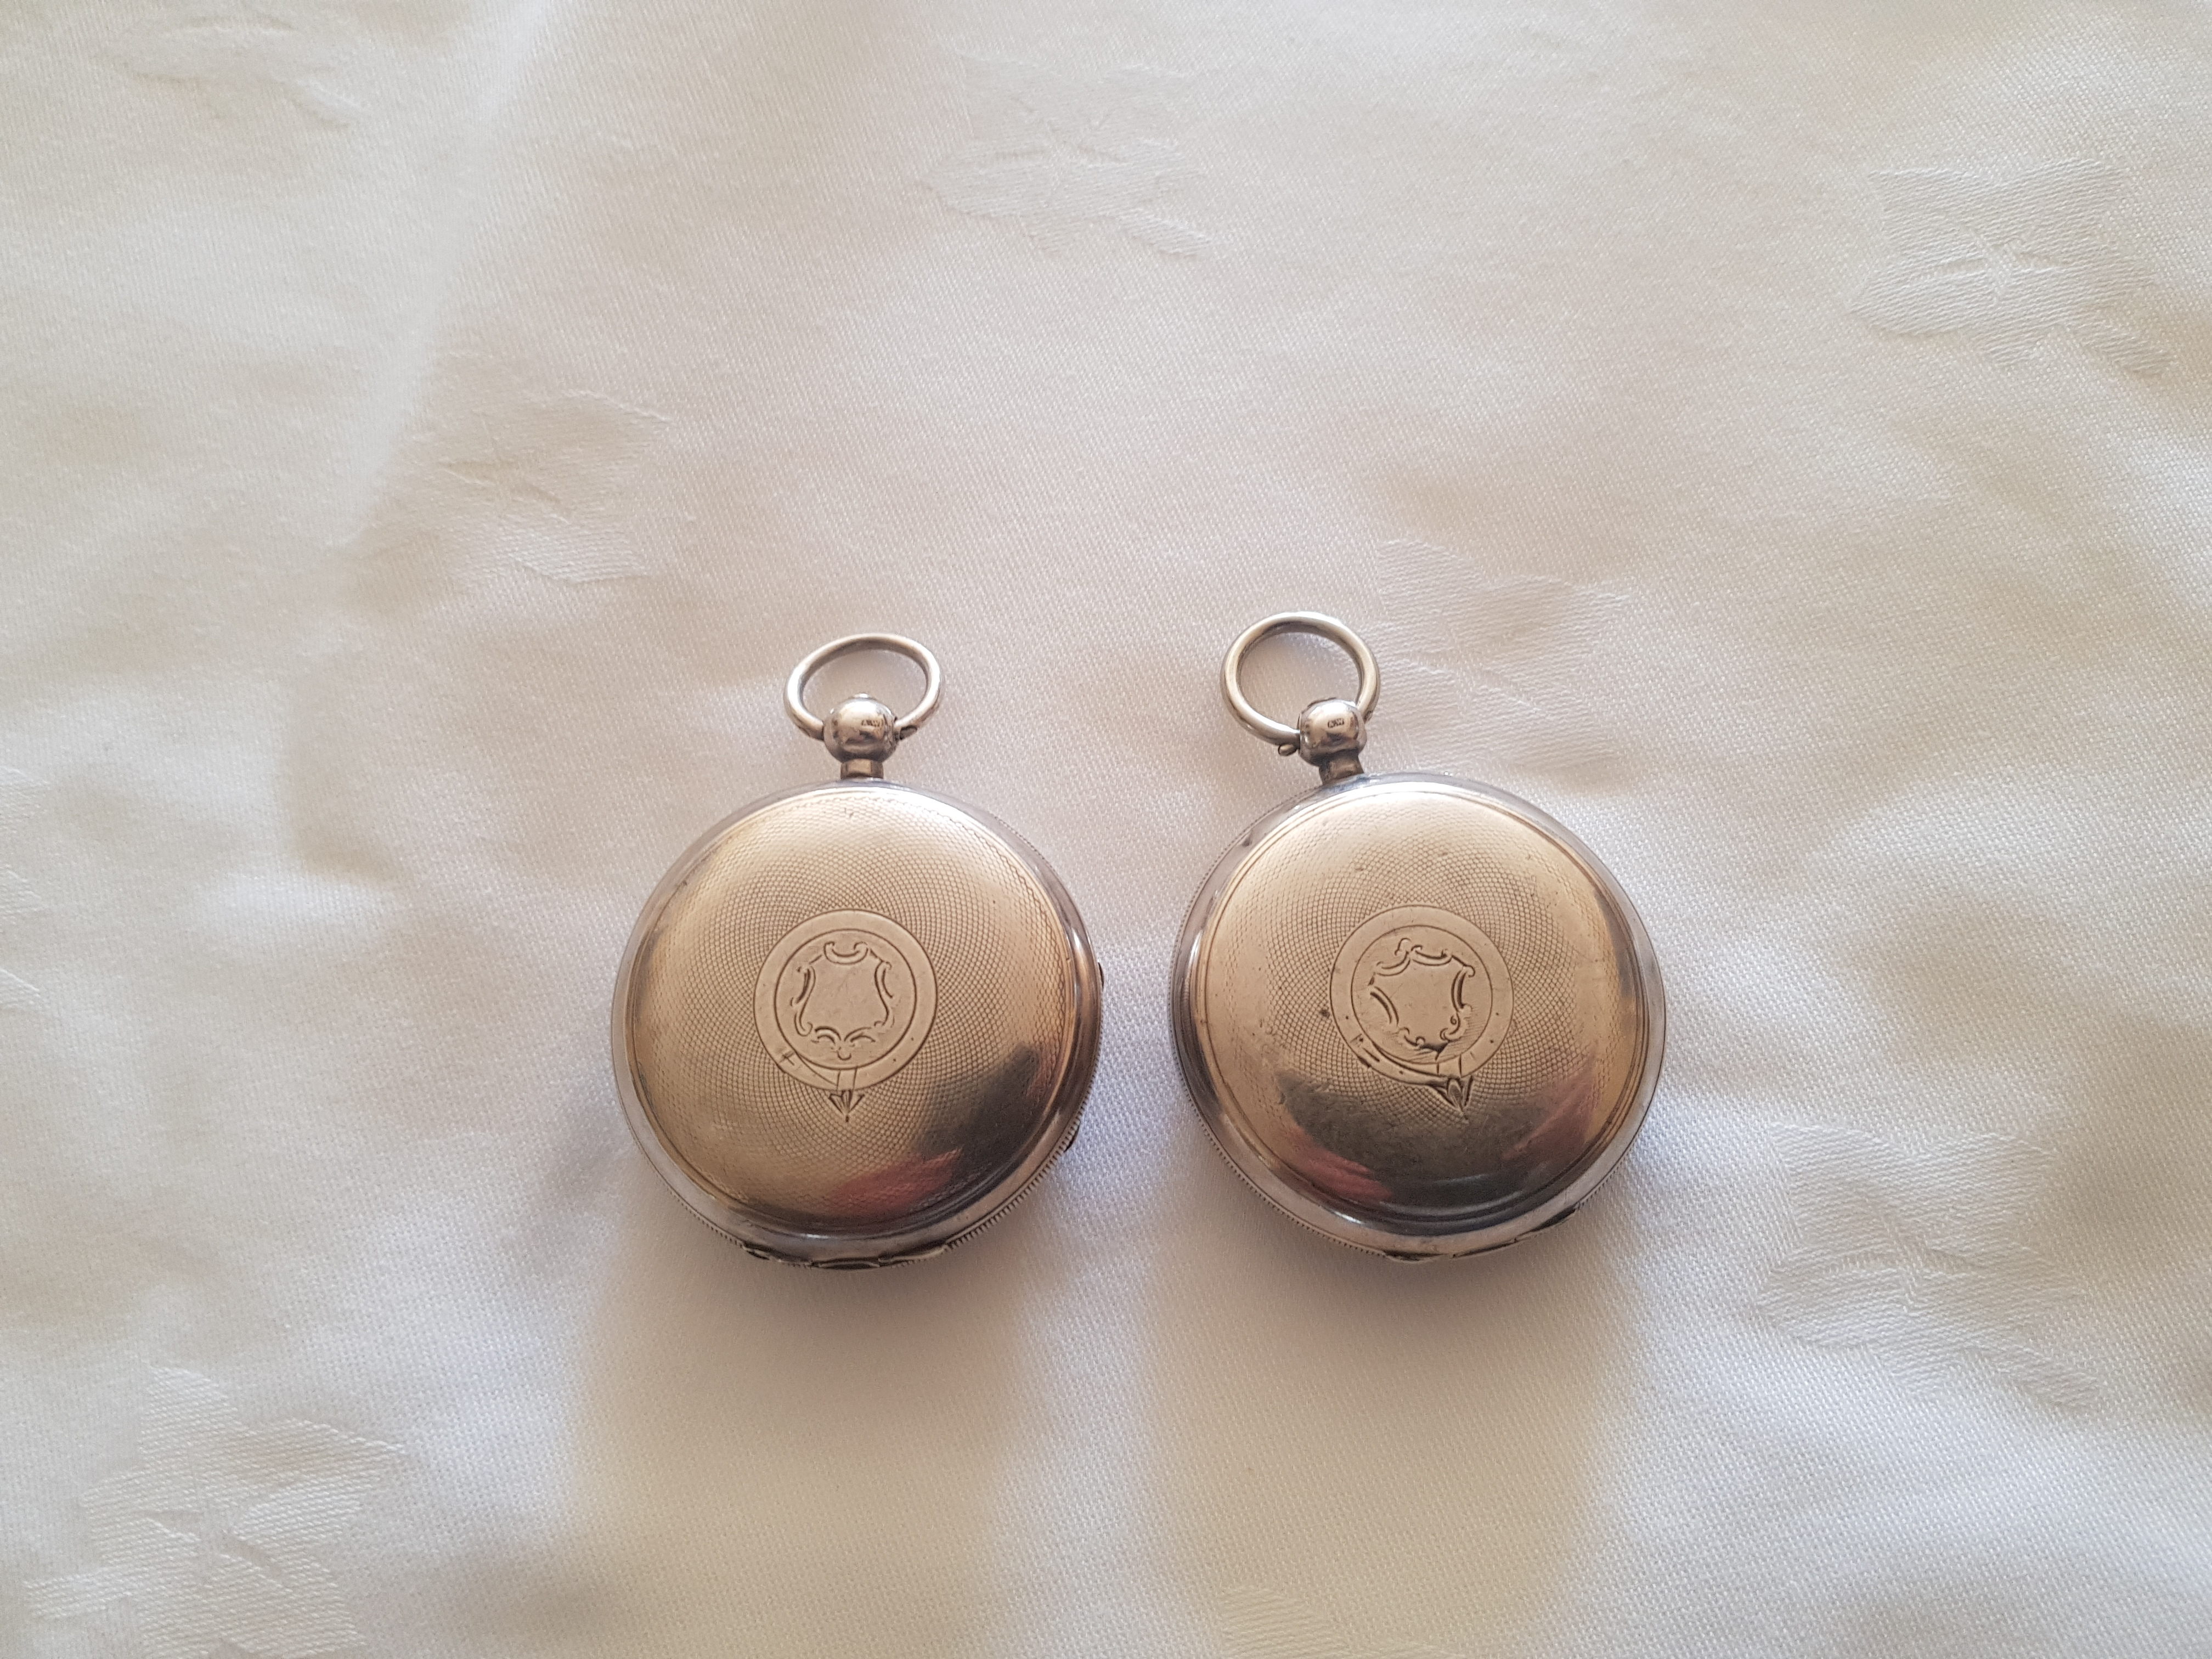 Pair of 19th. C. silver fob watches - Image 2 of 2